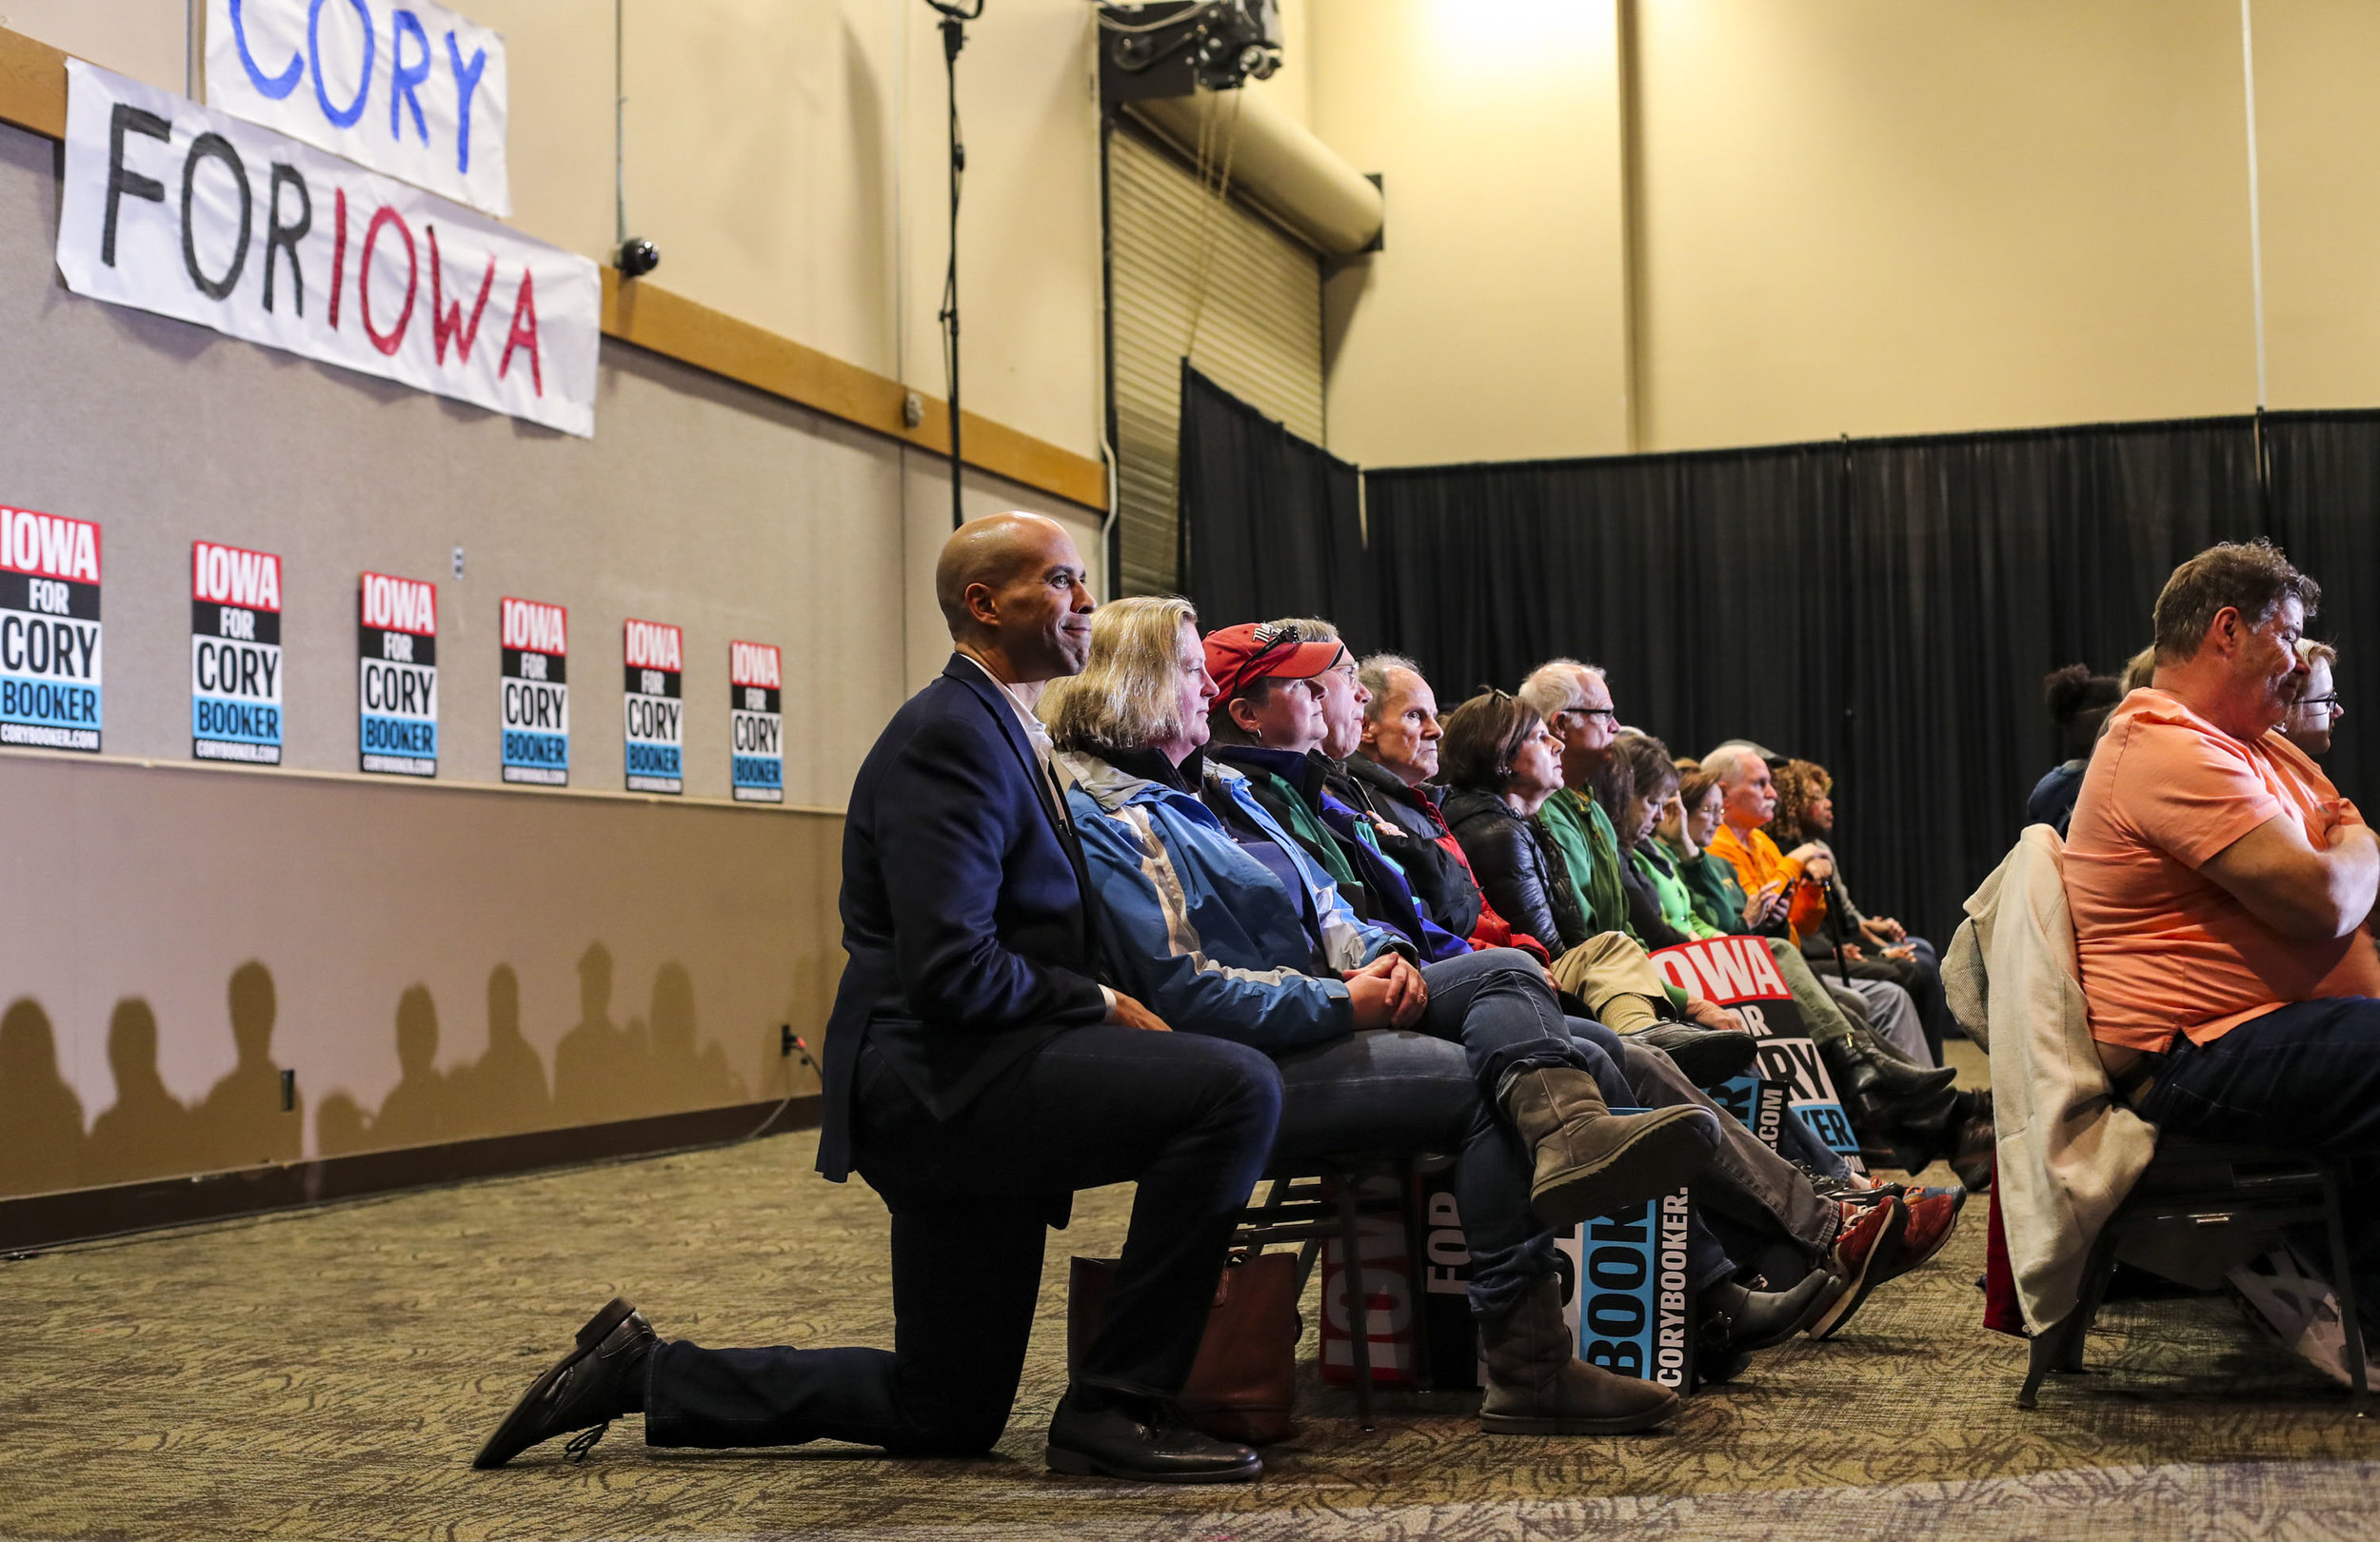 Sen. Cory Booker kneels alongside an attendee sitting in the back row just before he's introduced during a campaign event at the RiverCenter in Davenport, Sunday, March 17, 2019.